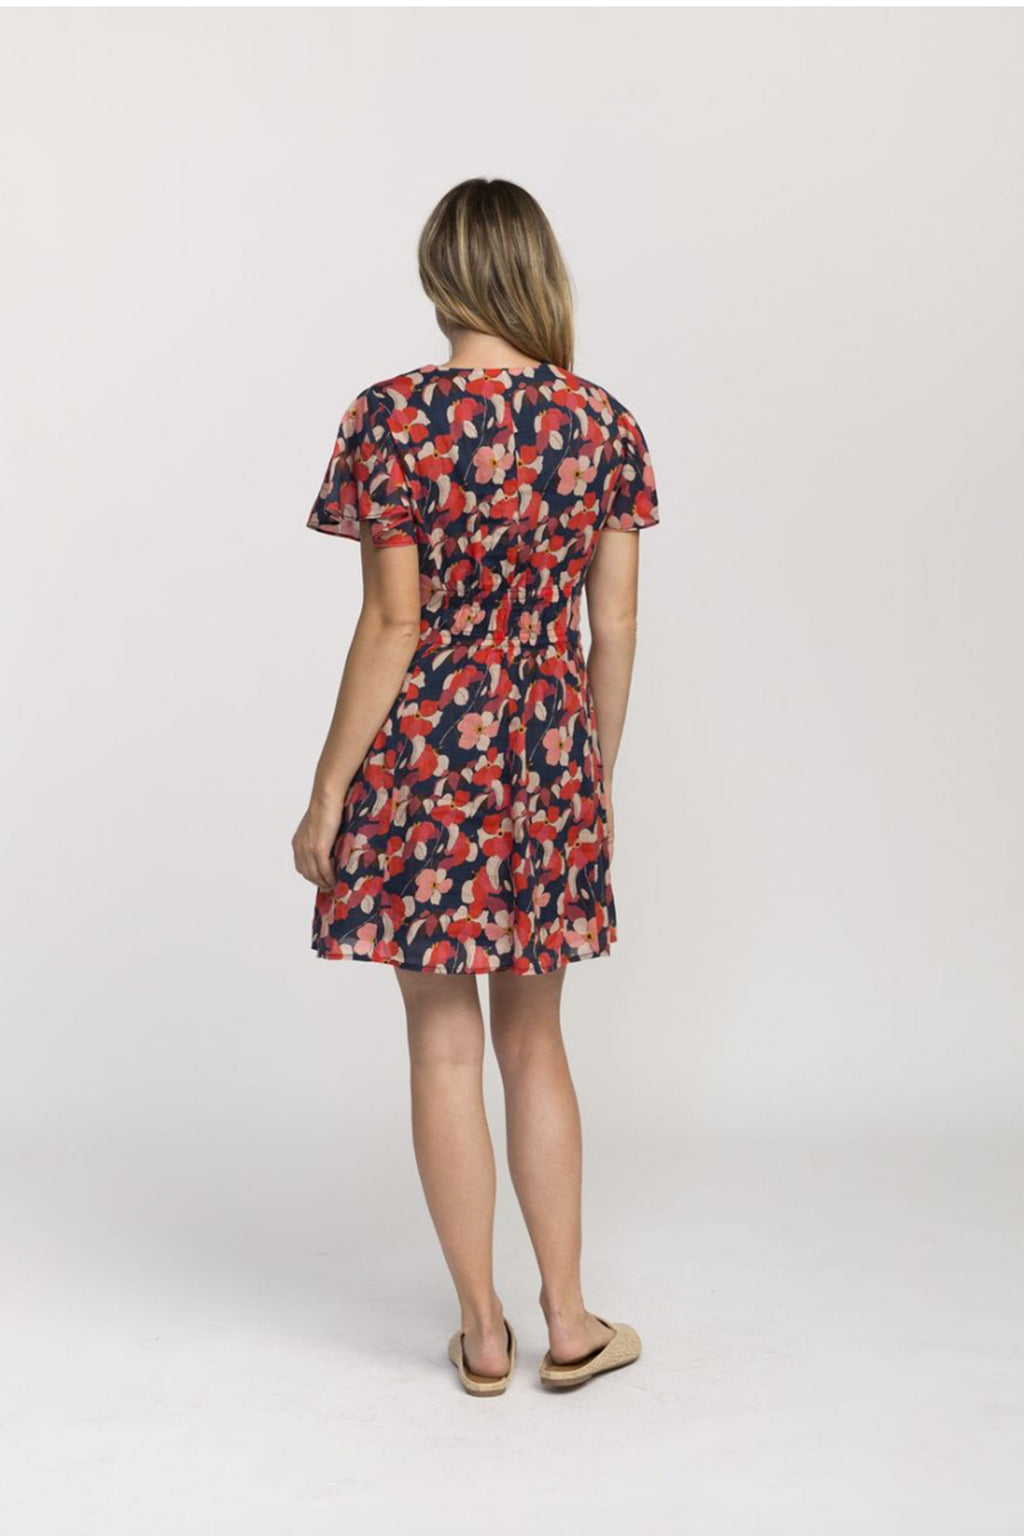 Trovato Sistine Cotton Dress In Navy Floral